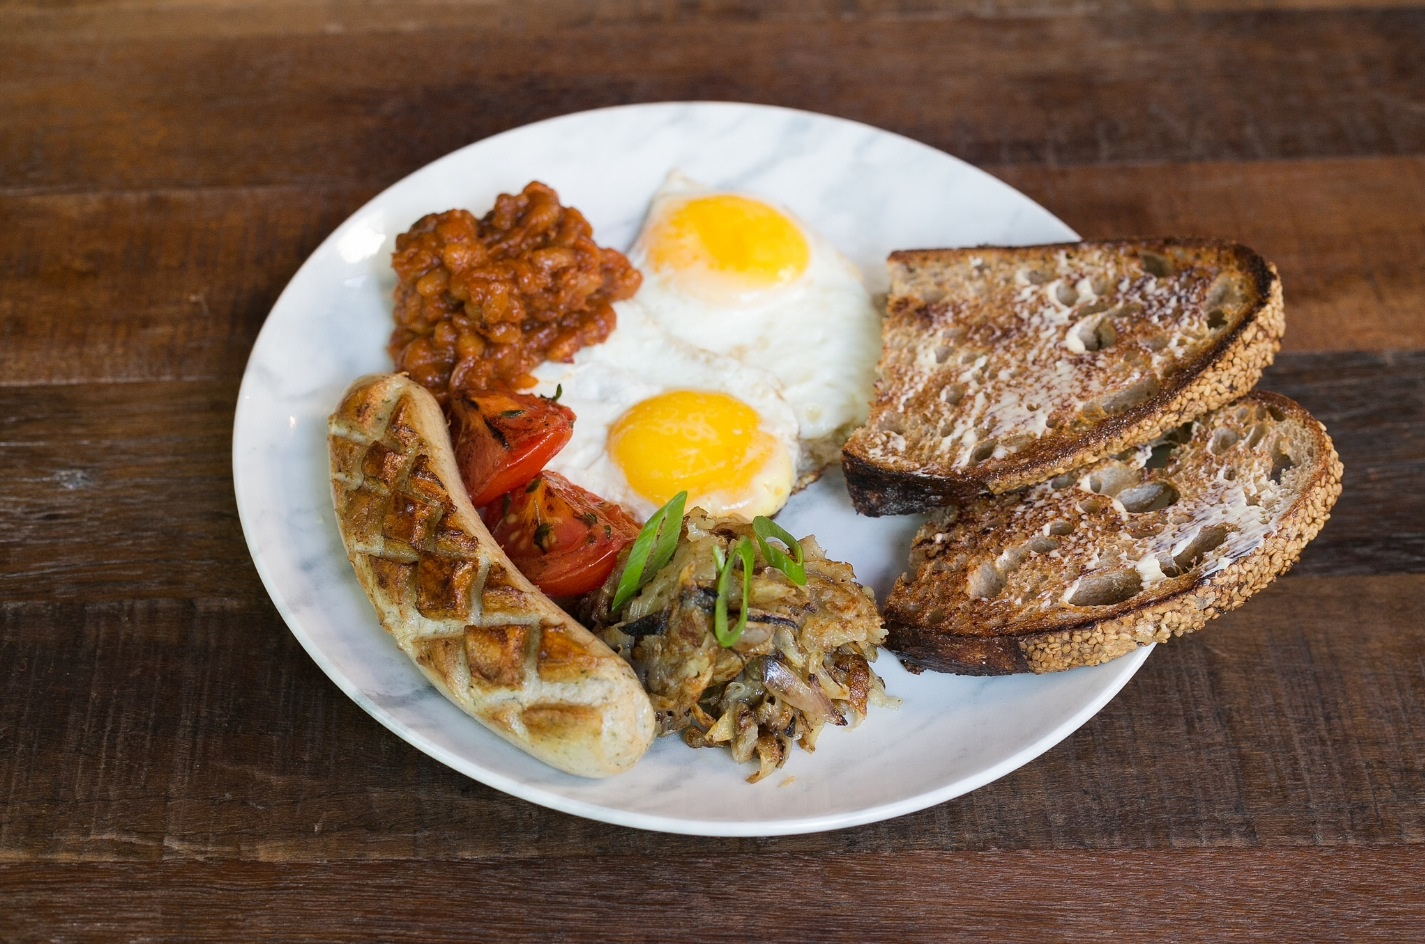 Drake Breakfast: Fried eggs, hash browns, roasted tomatoes, banger, baked beans $12.95